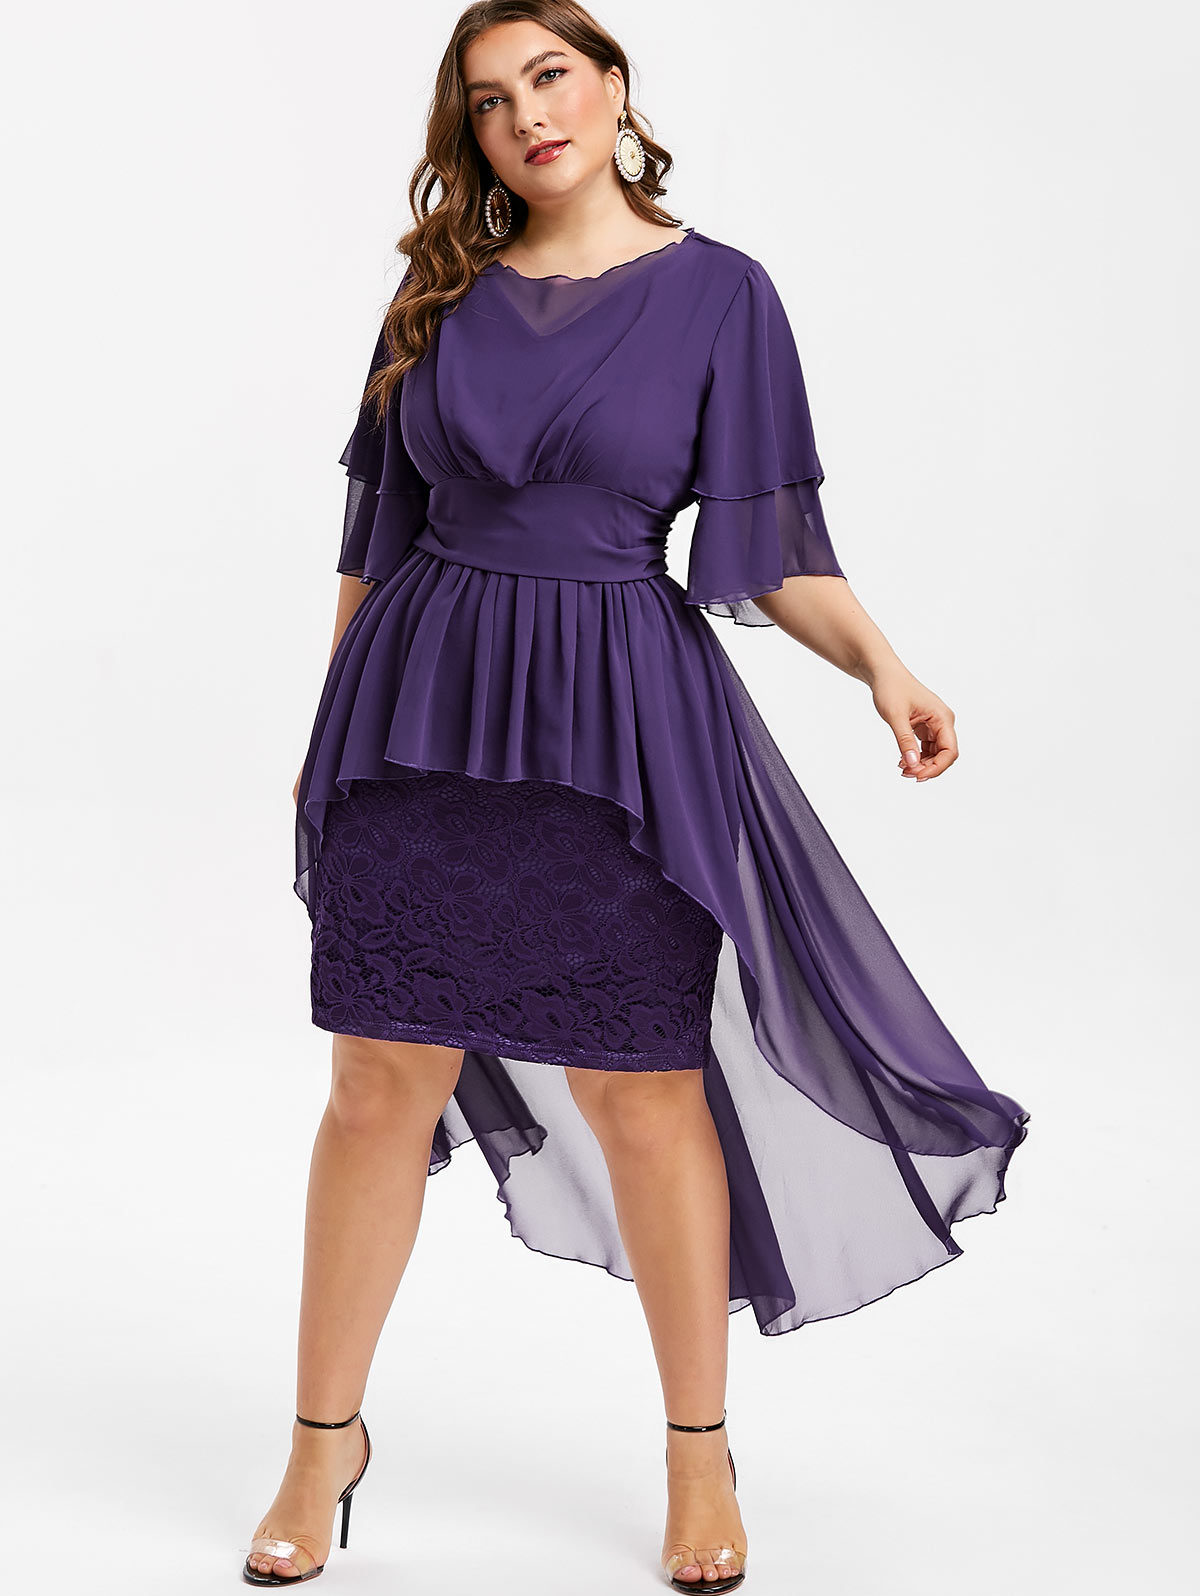 US $35.53 21% OFF|Wipalo Women Lace Panel Plus Size 5XL High Low Dress  Layered Sleeve Mid Calf Bodycon Dress Solid Elegant Club Party Vestidos-in  ...